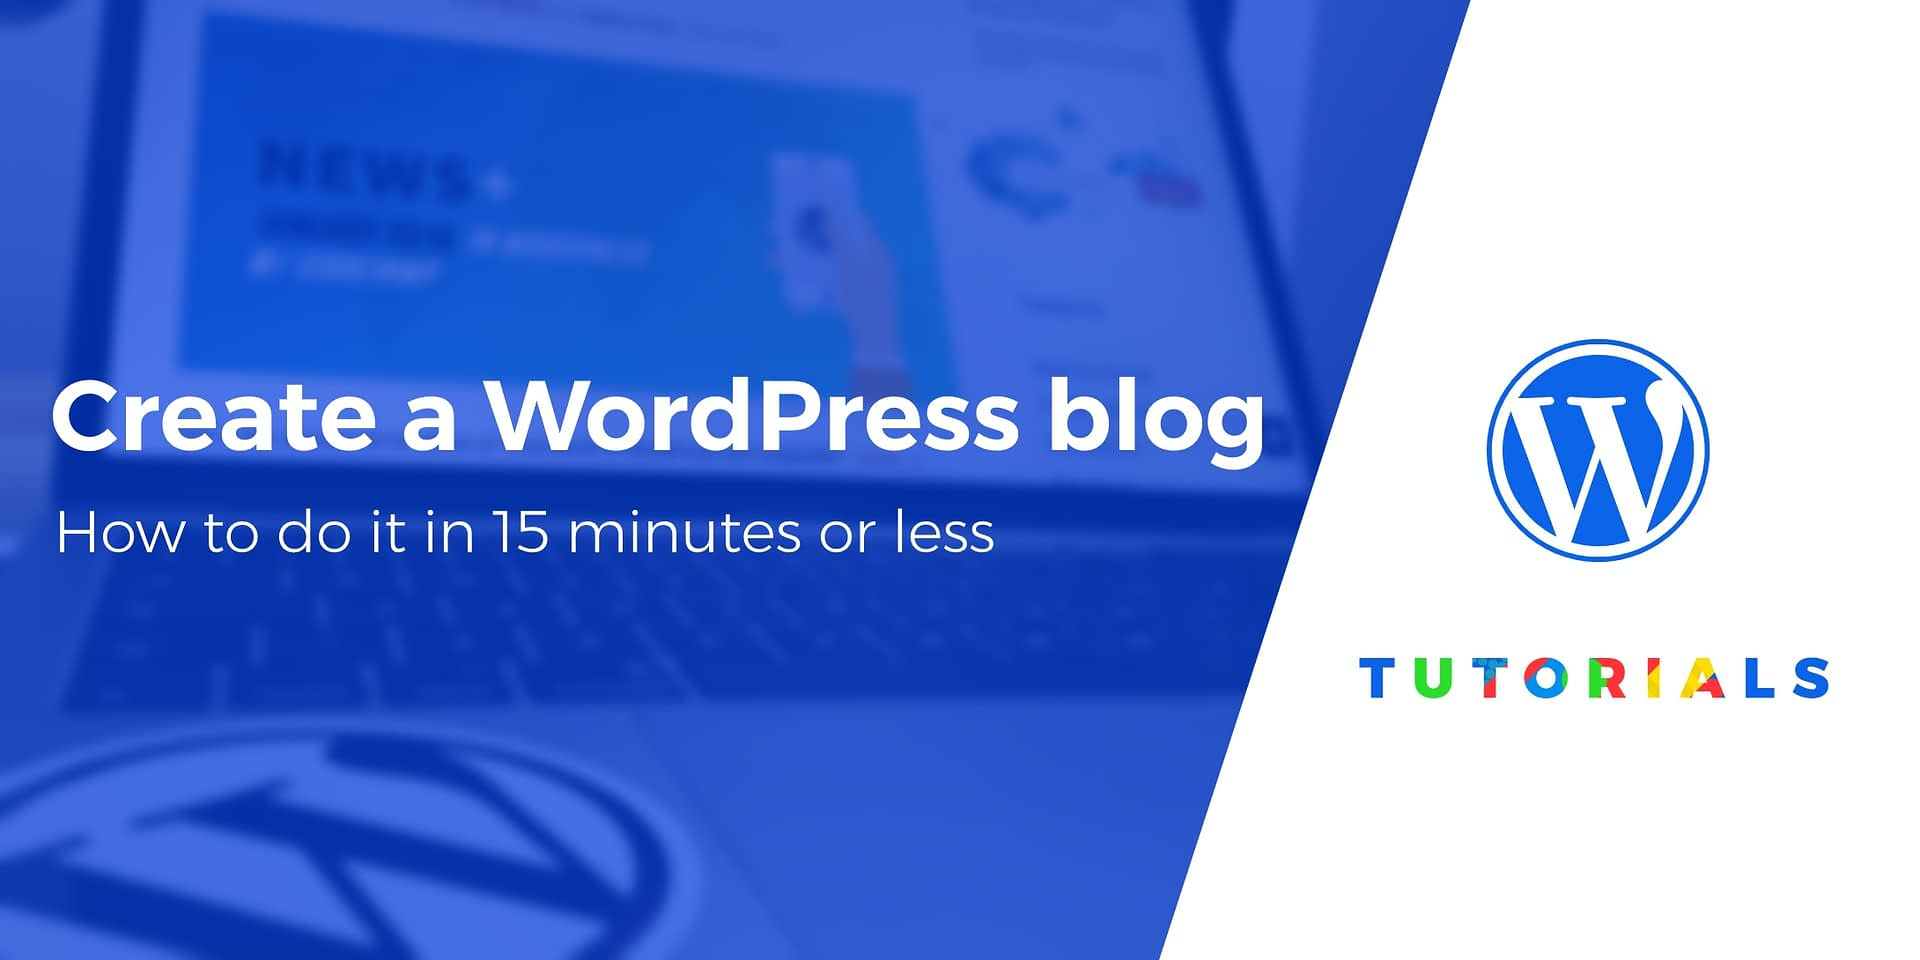 How to Create a WordPress Blog in 15 Minutes - Free Guide